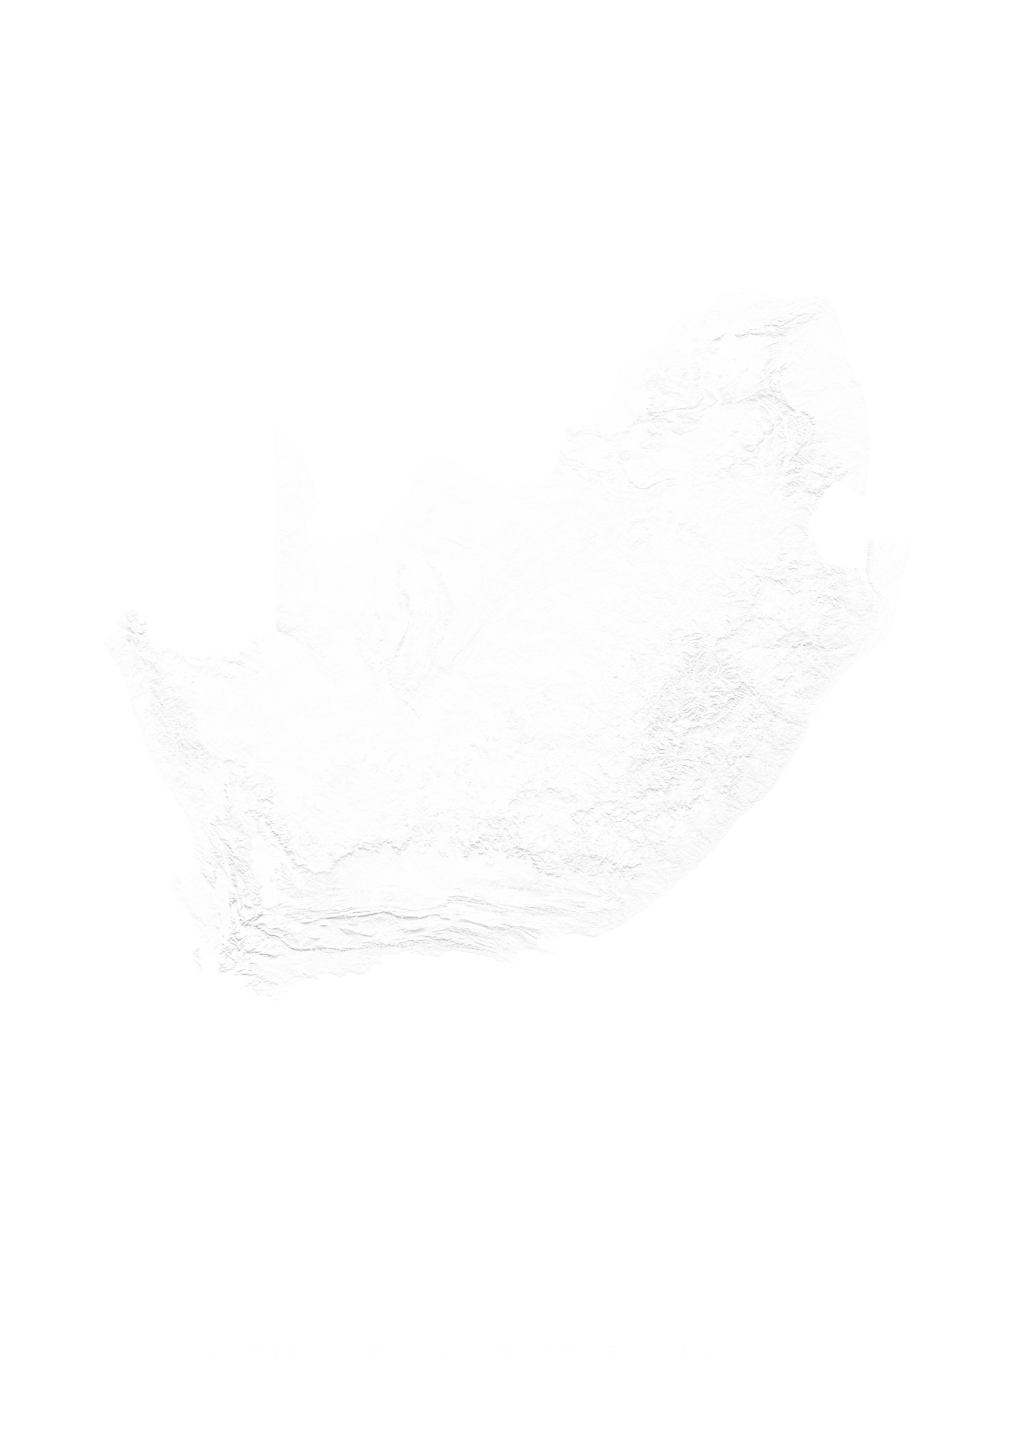 South Africa (Includes Lesotho) wall map